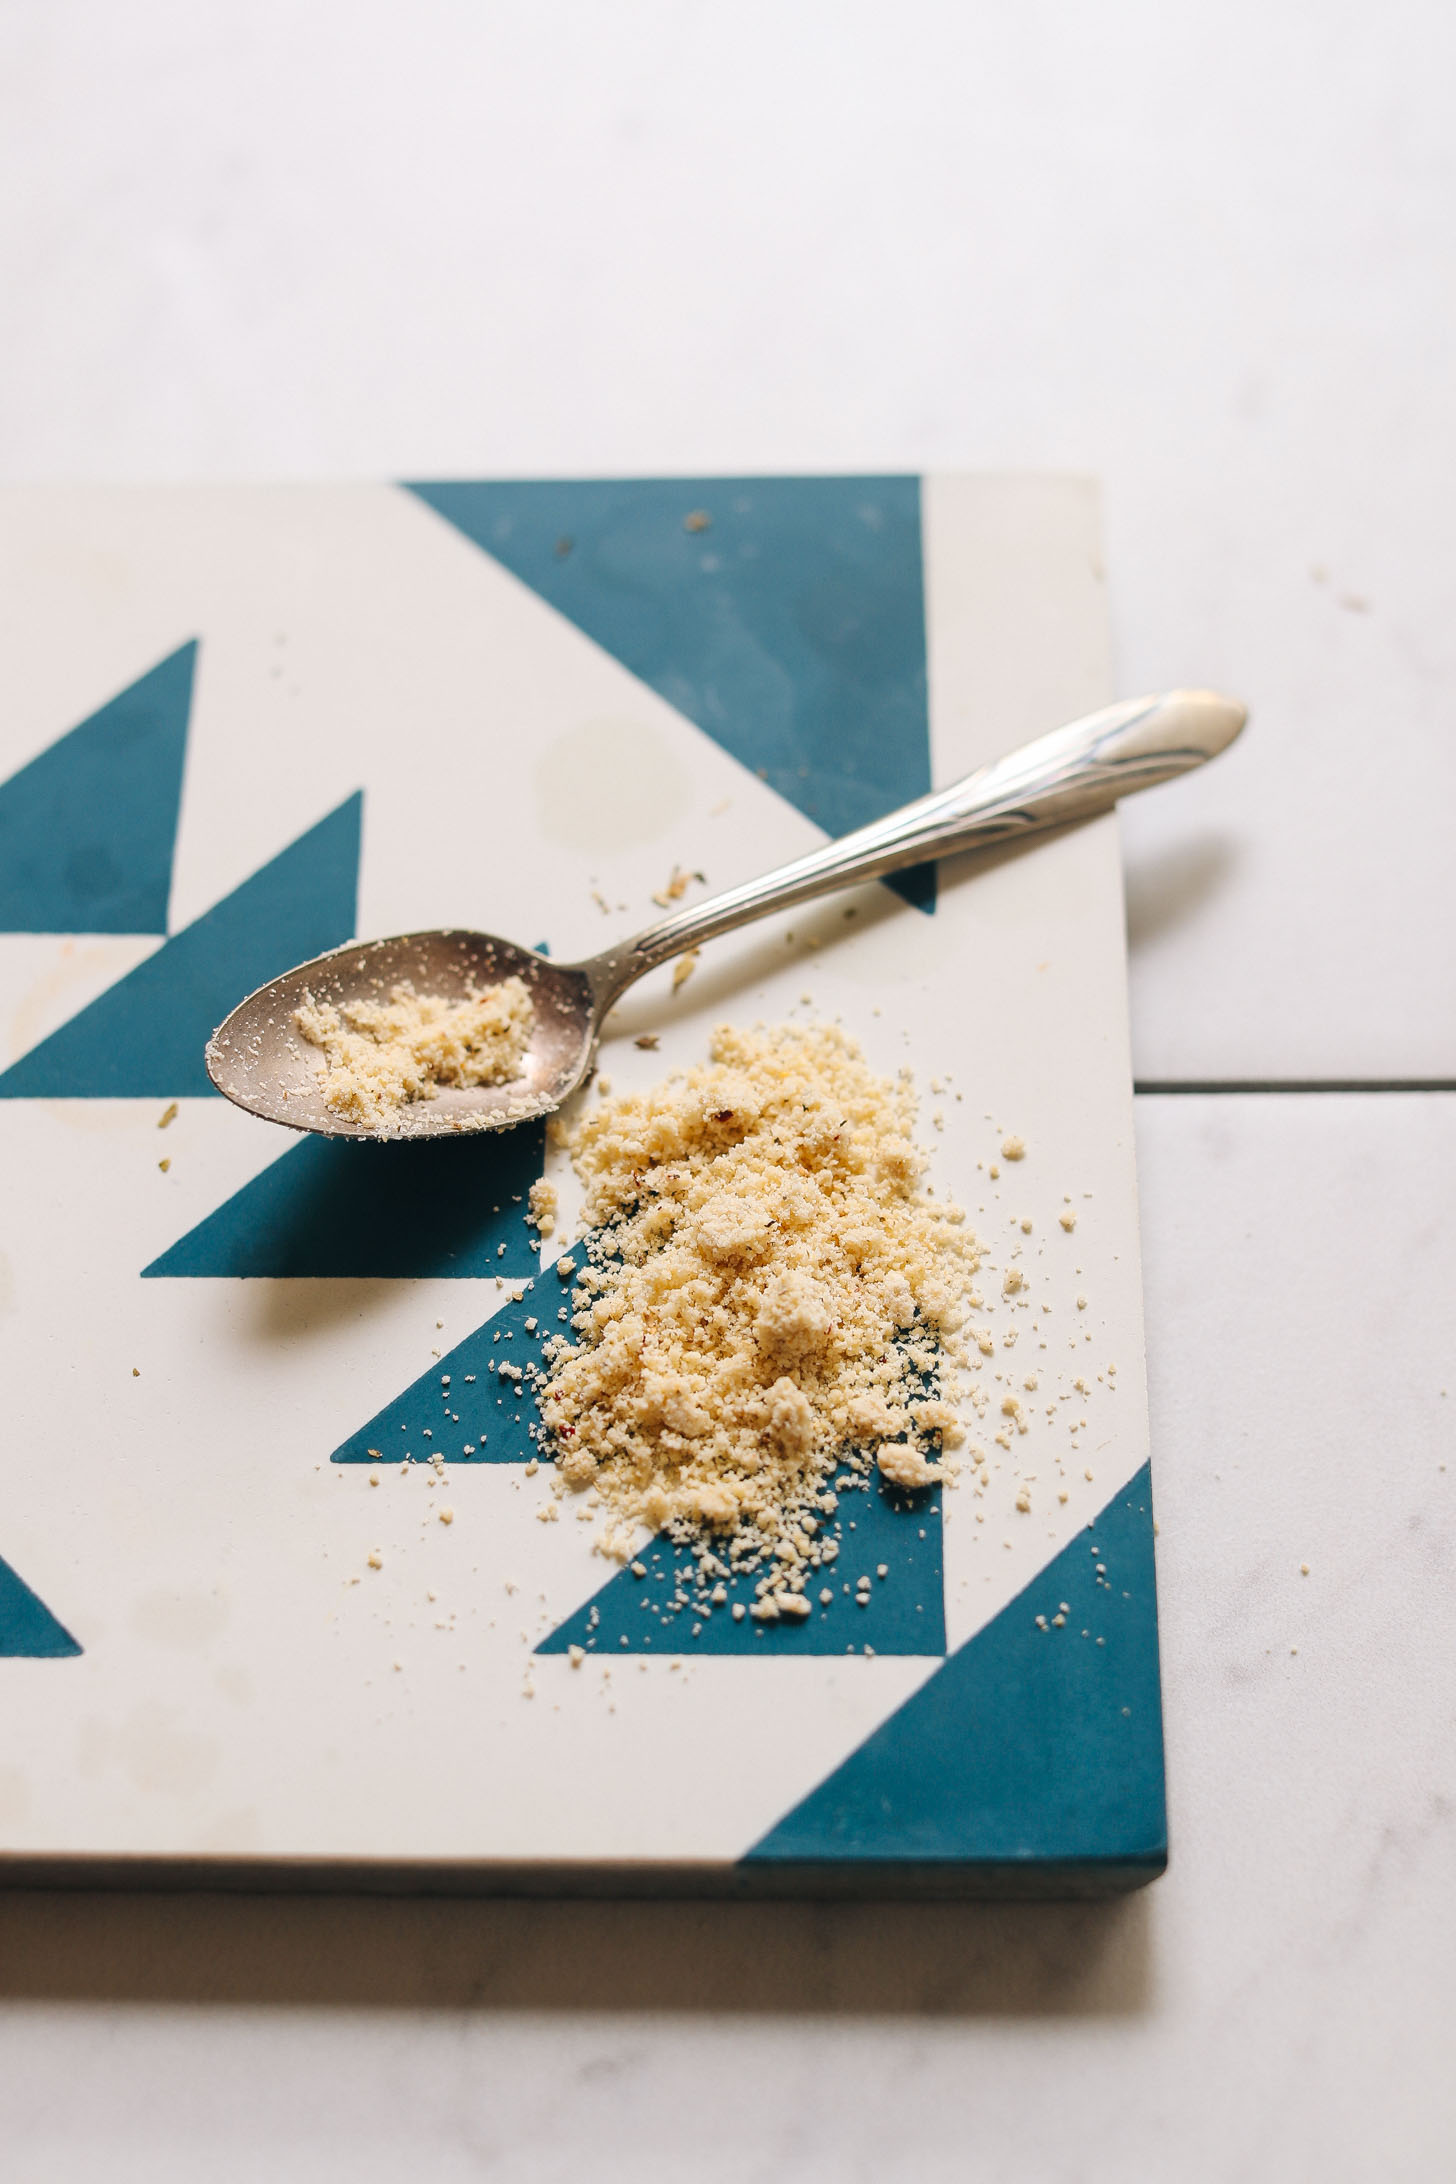 Spoonful of yeast-free Vegan Cashew Parmesan on a blue and white tile